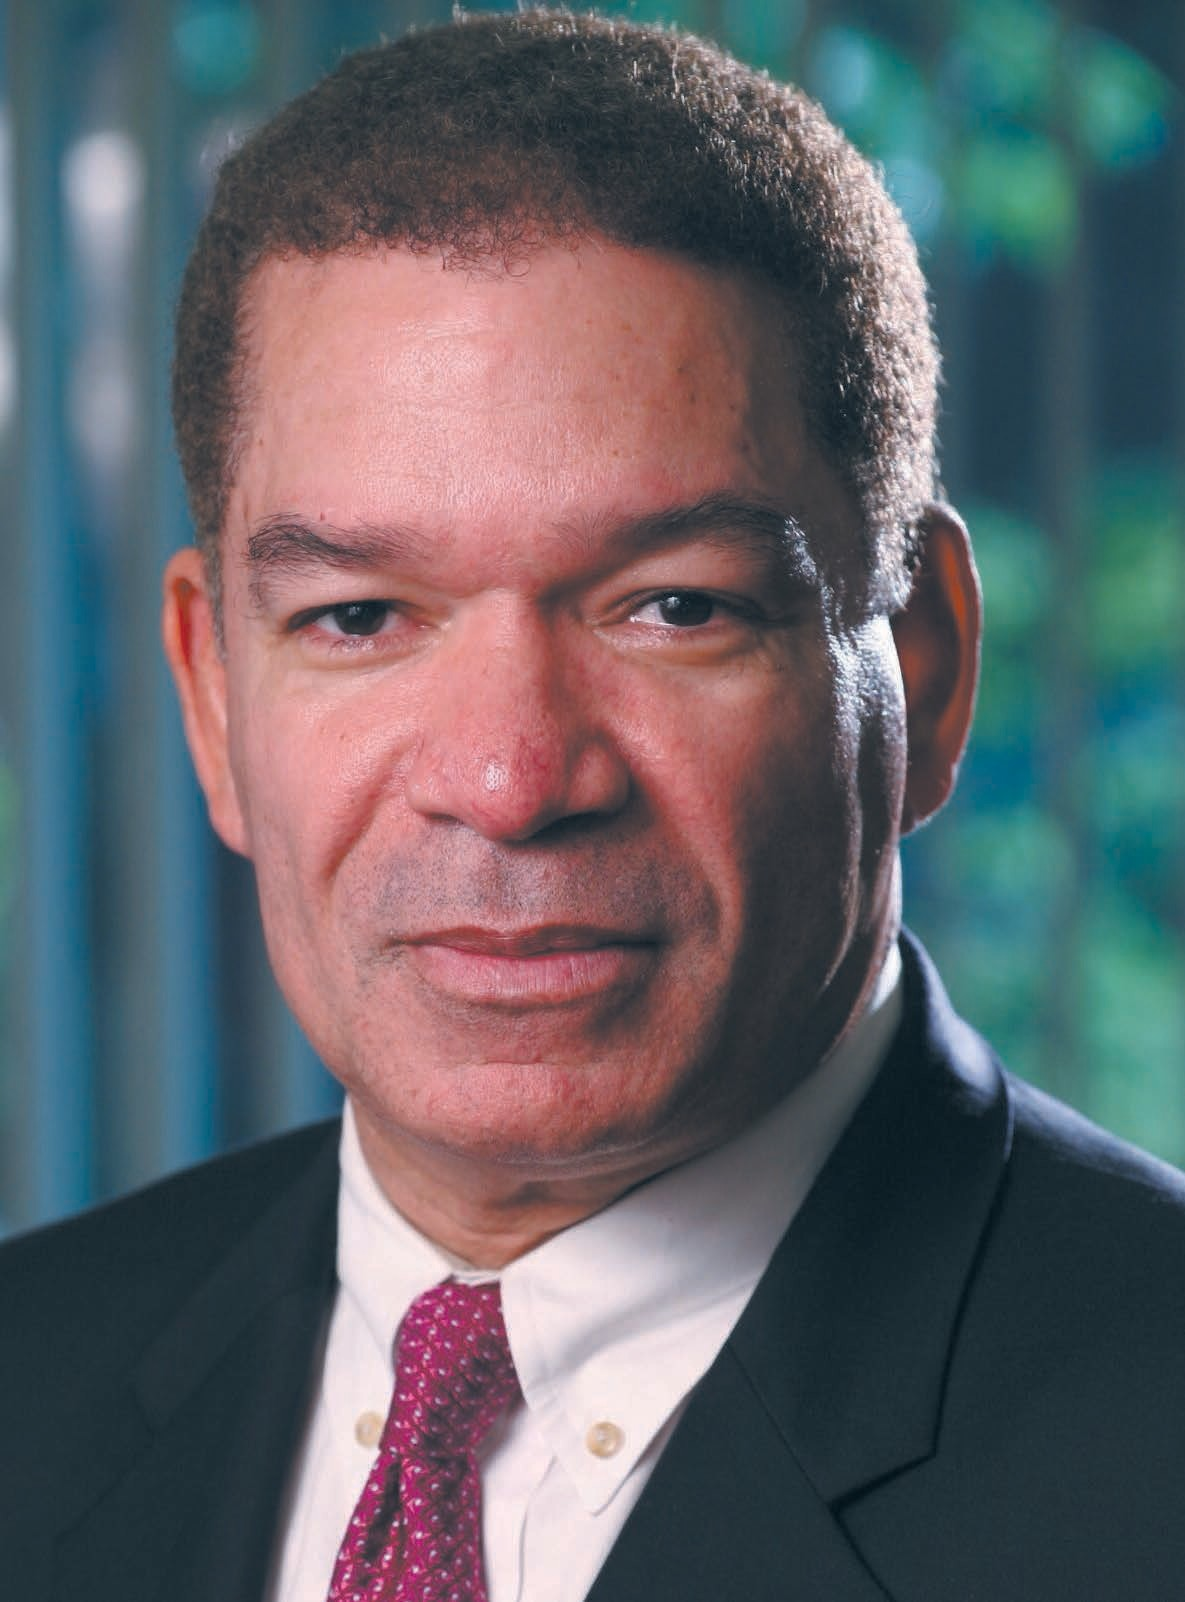 Attorney Michael A. Grant, President of the National Bankers Association.